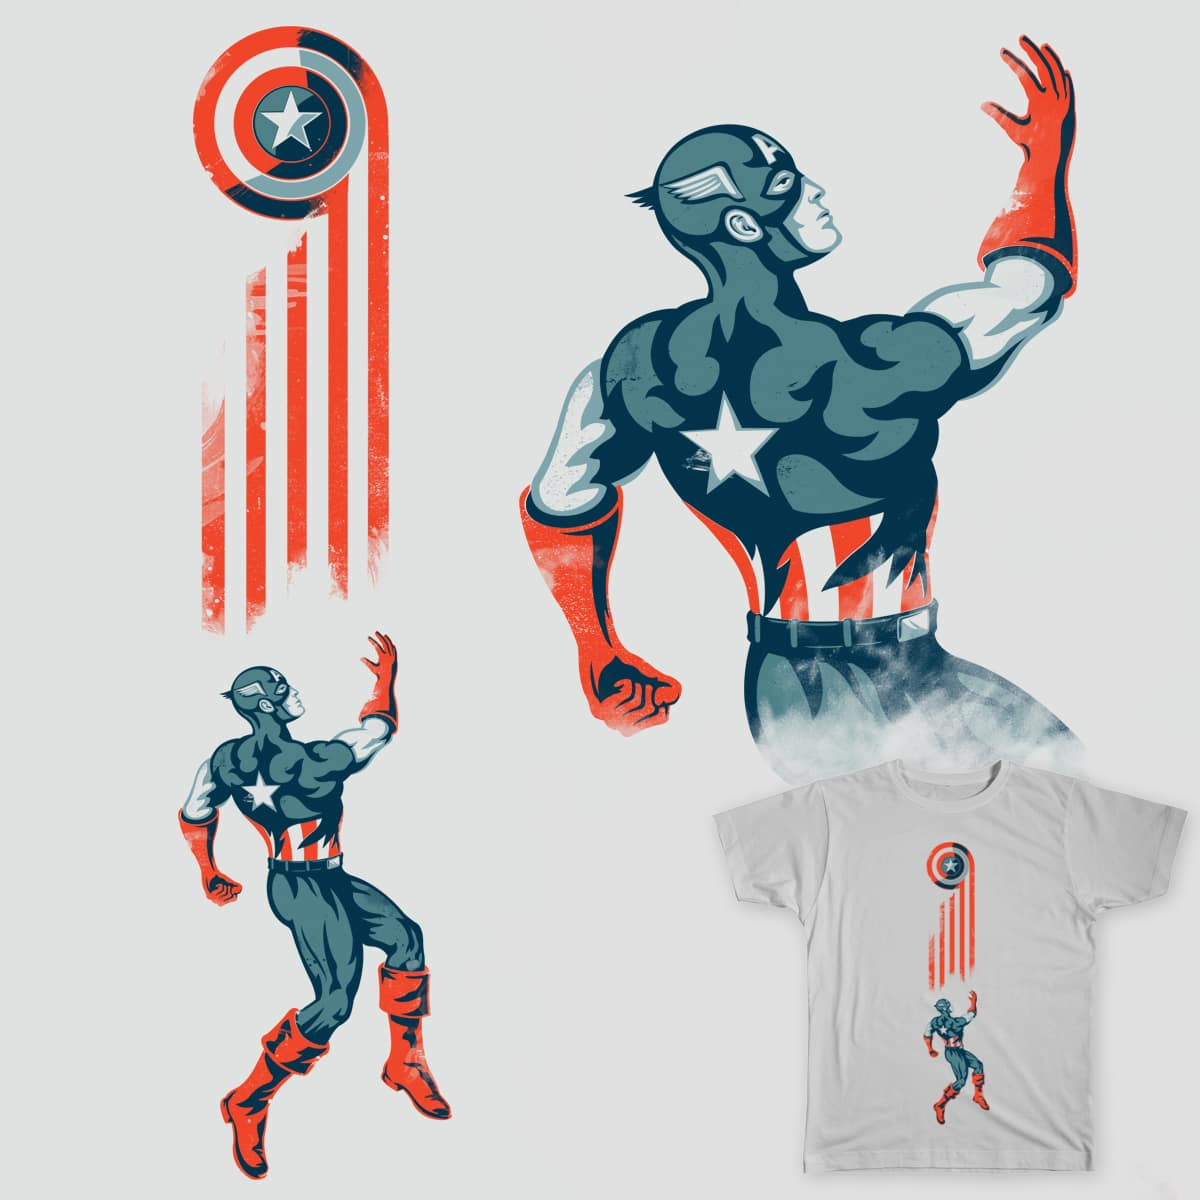 Captains Stripes by cpdesign on Threadless